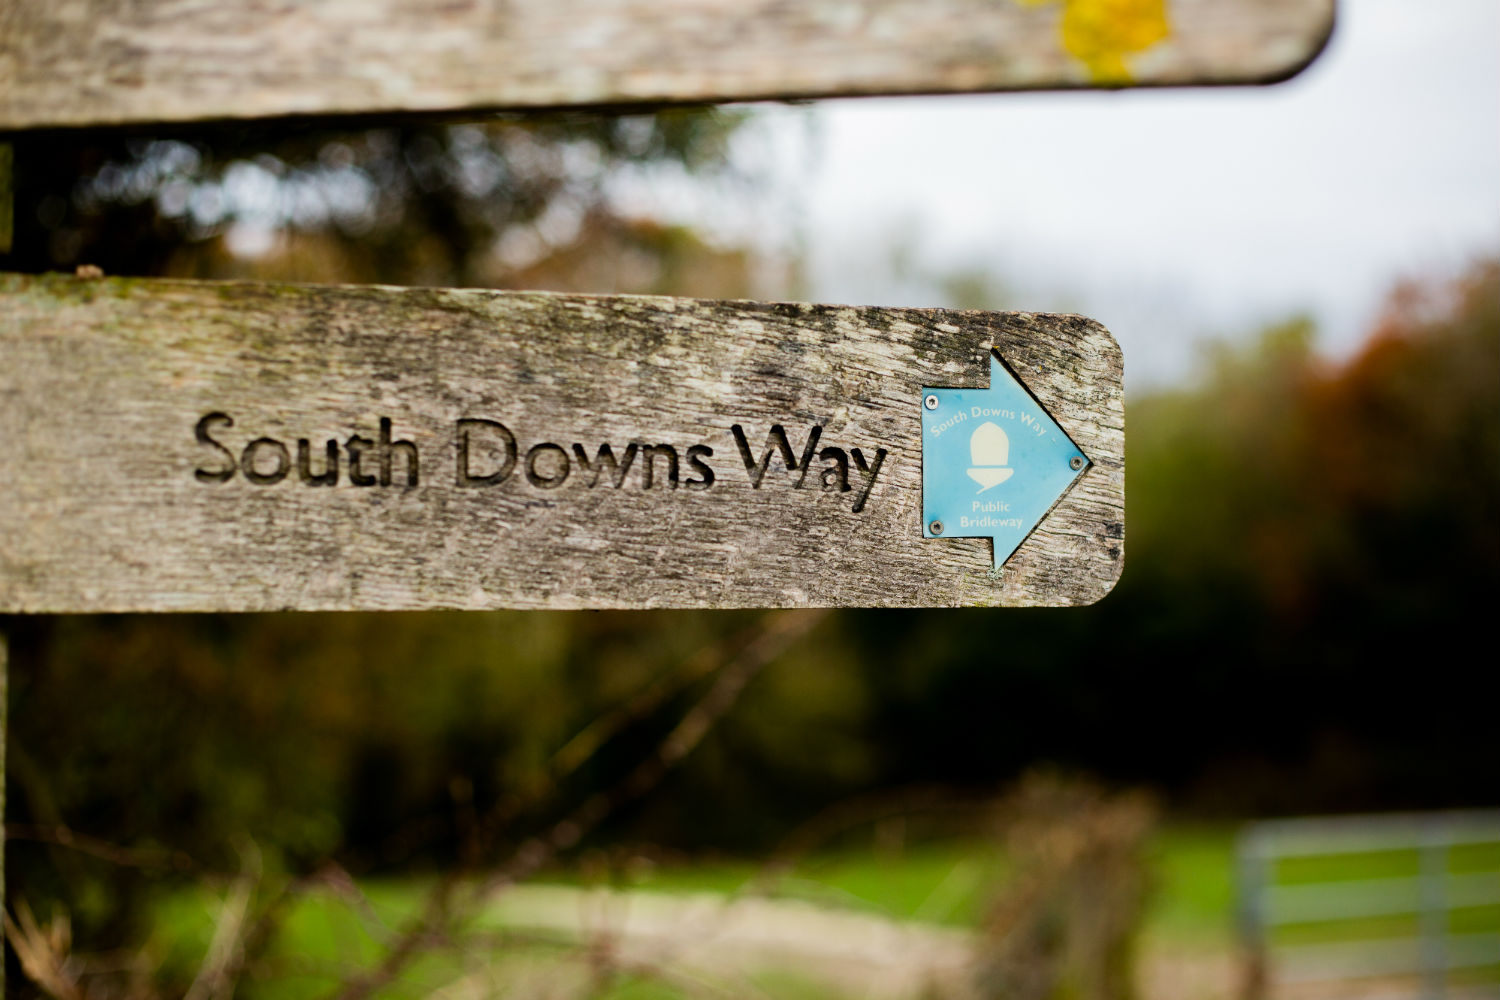 South Downs Way is on the doorstep